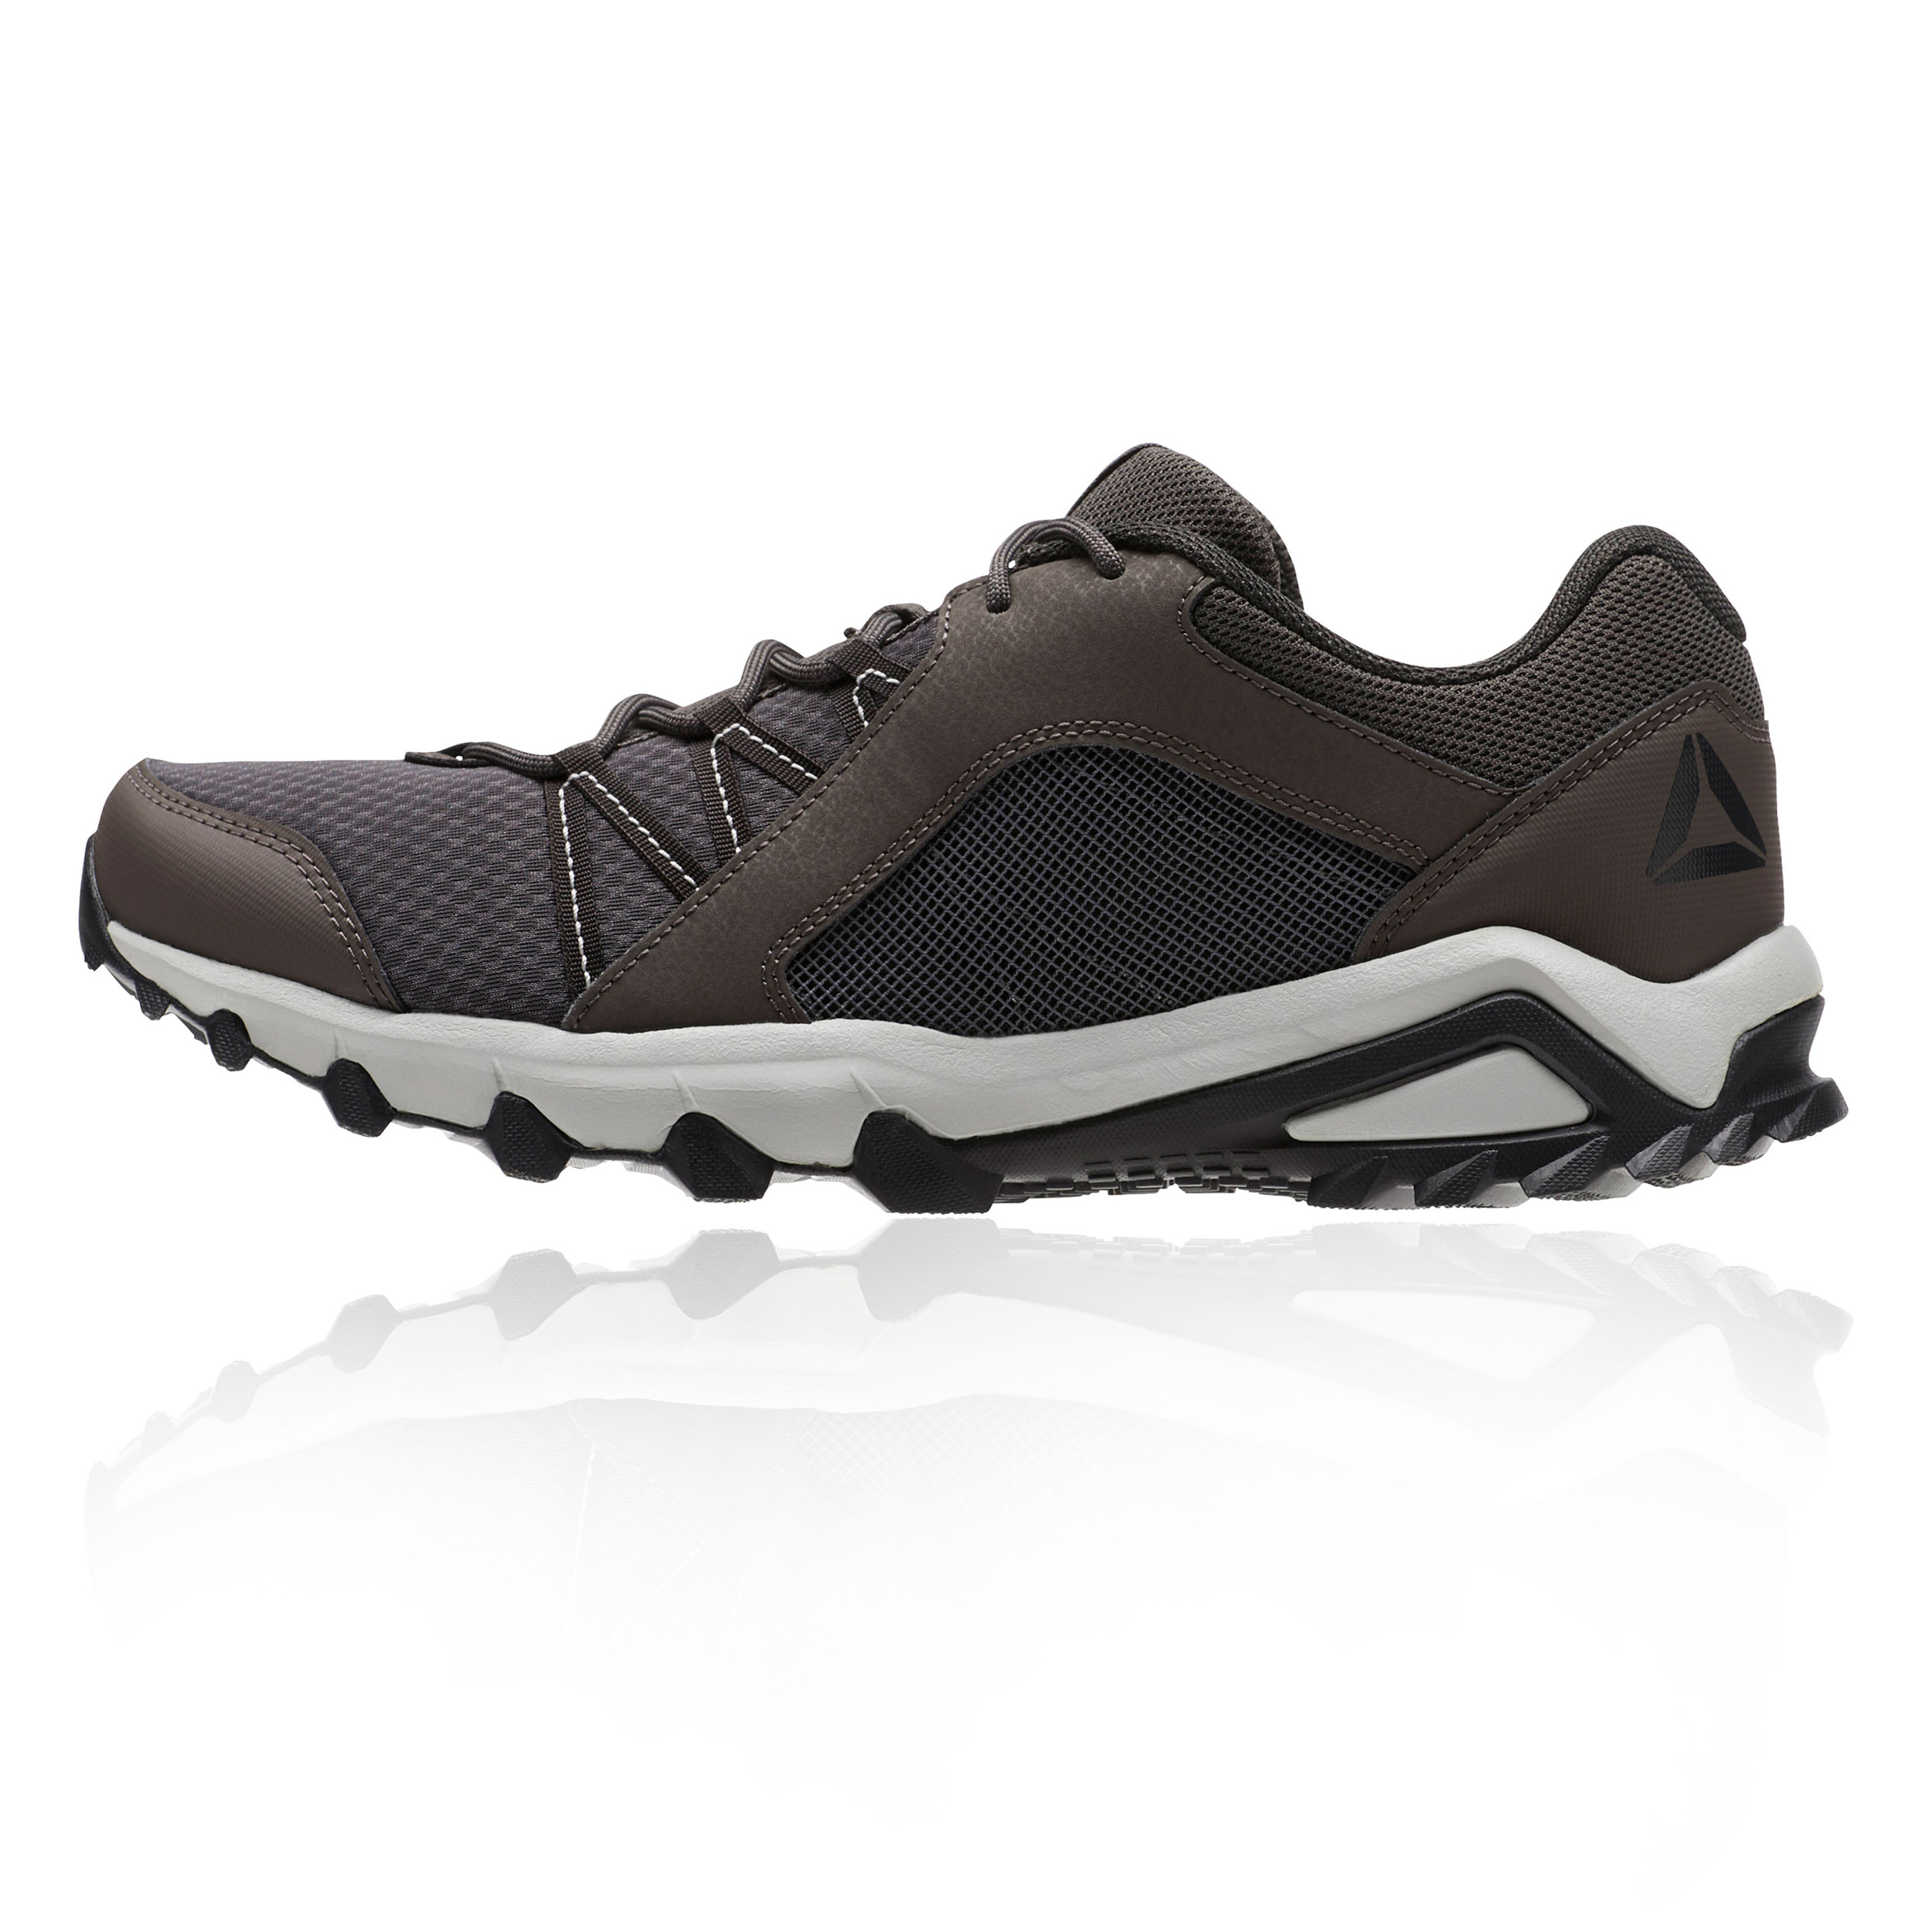 d9ea2a2bdecc Reebok Mens Trail Grip 6.0 Running Shoes Trainers Sneakers Brown Sports  Outdoors